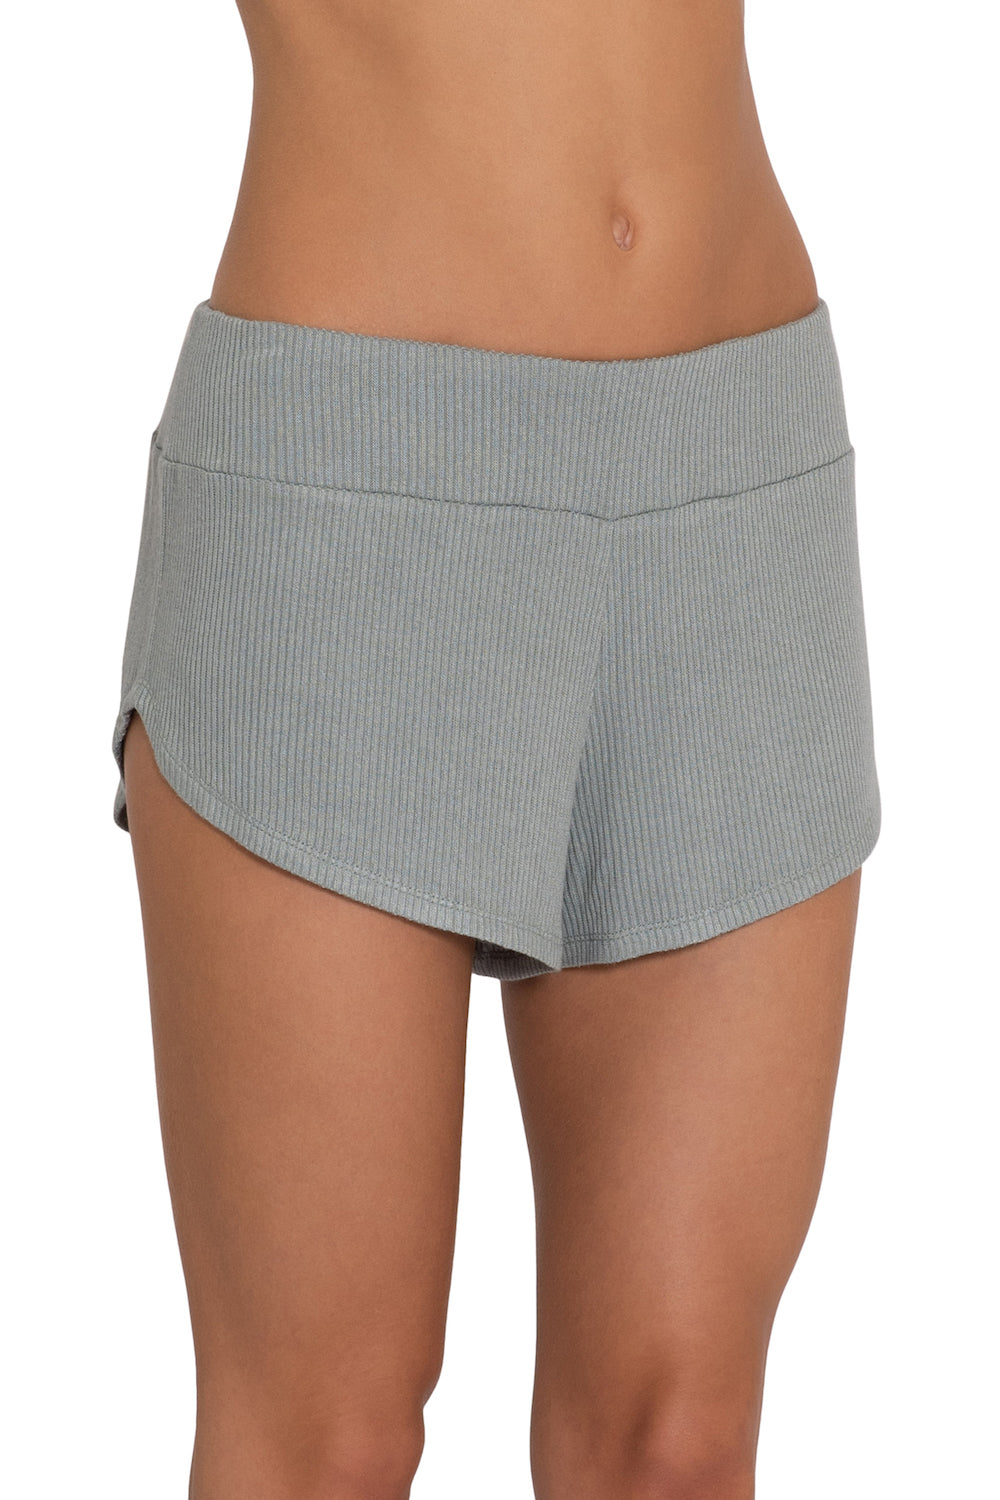 Eberjey Elon Track Short- Willow Green